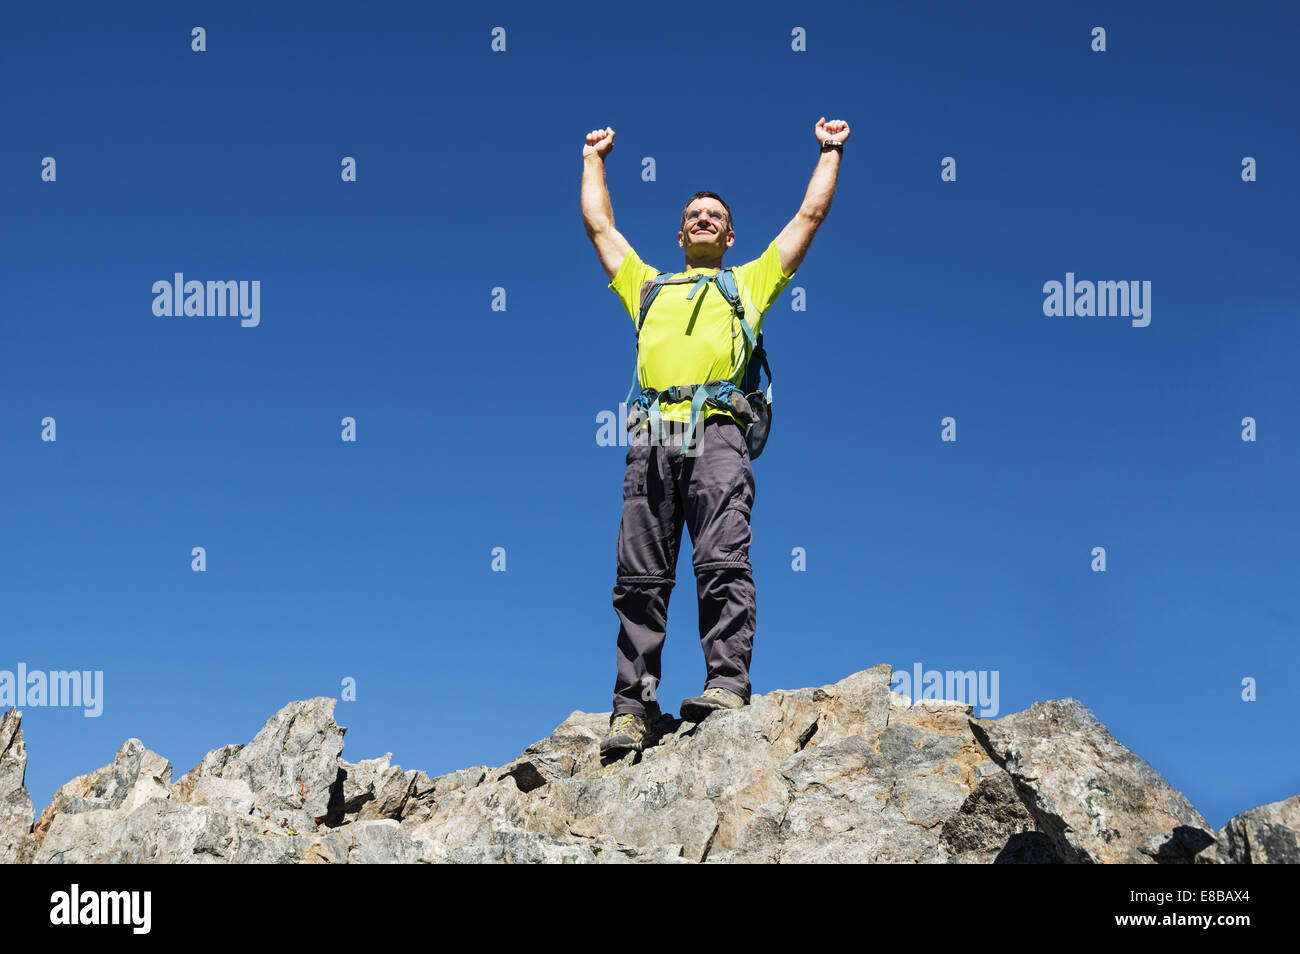 man celebrates his success on the summit of Hurd Peak by raising his fists - Stock Image